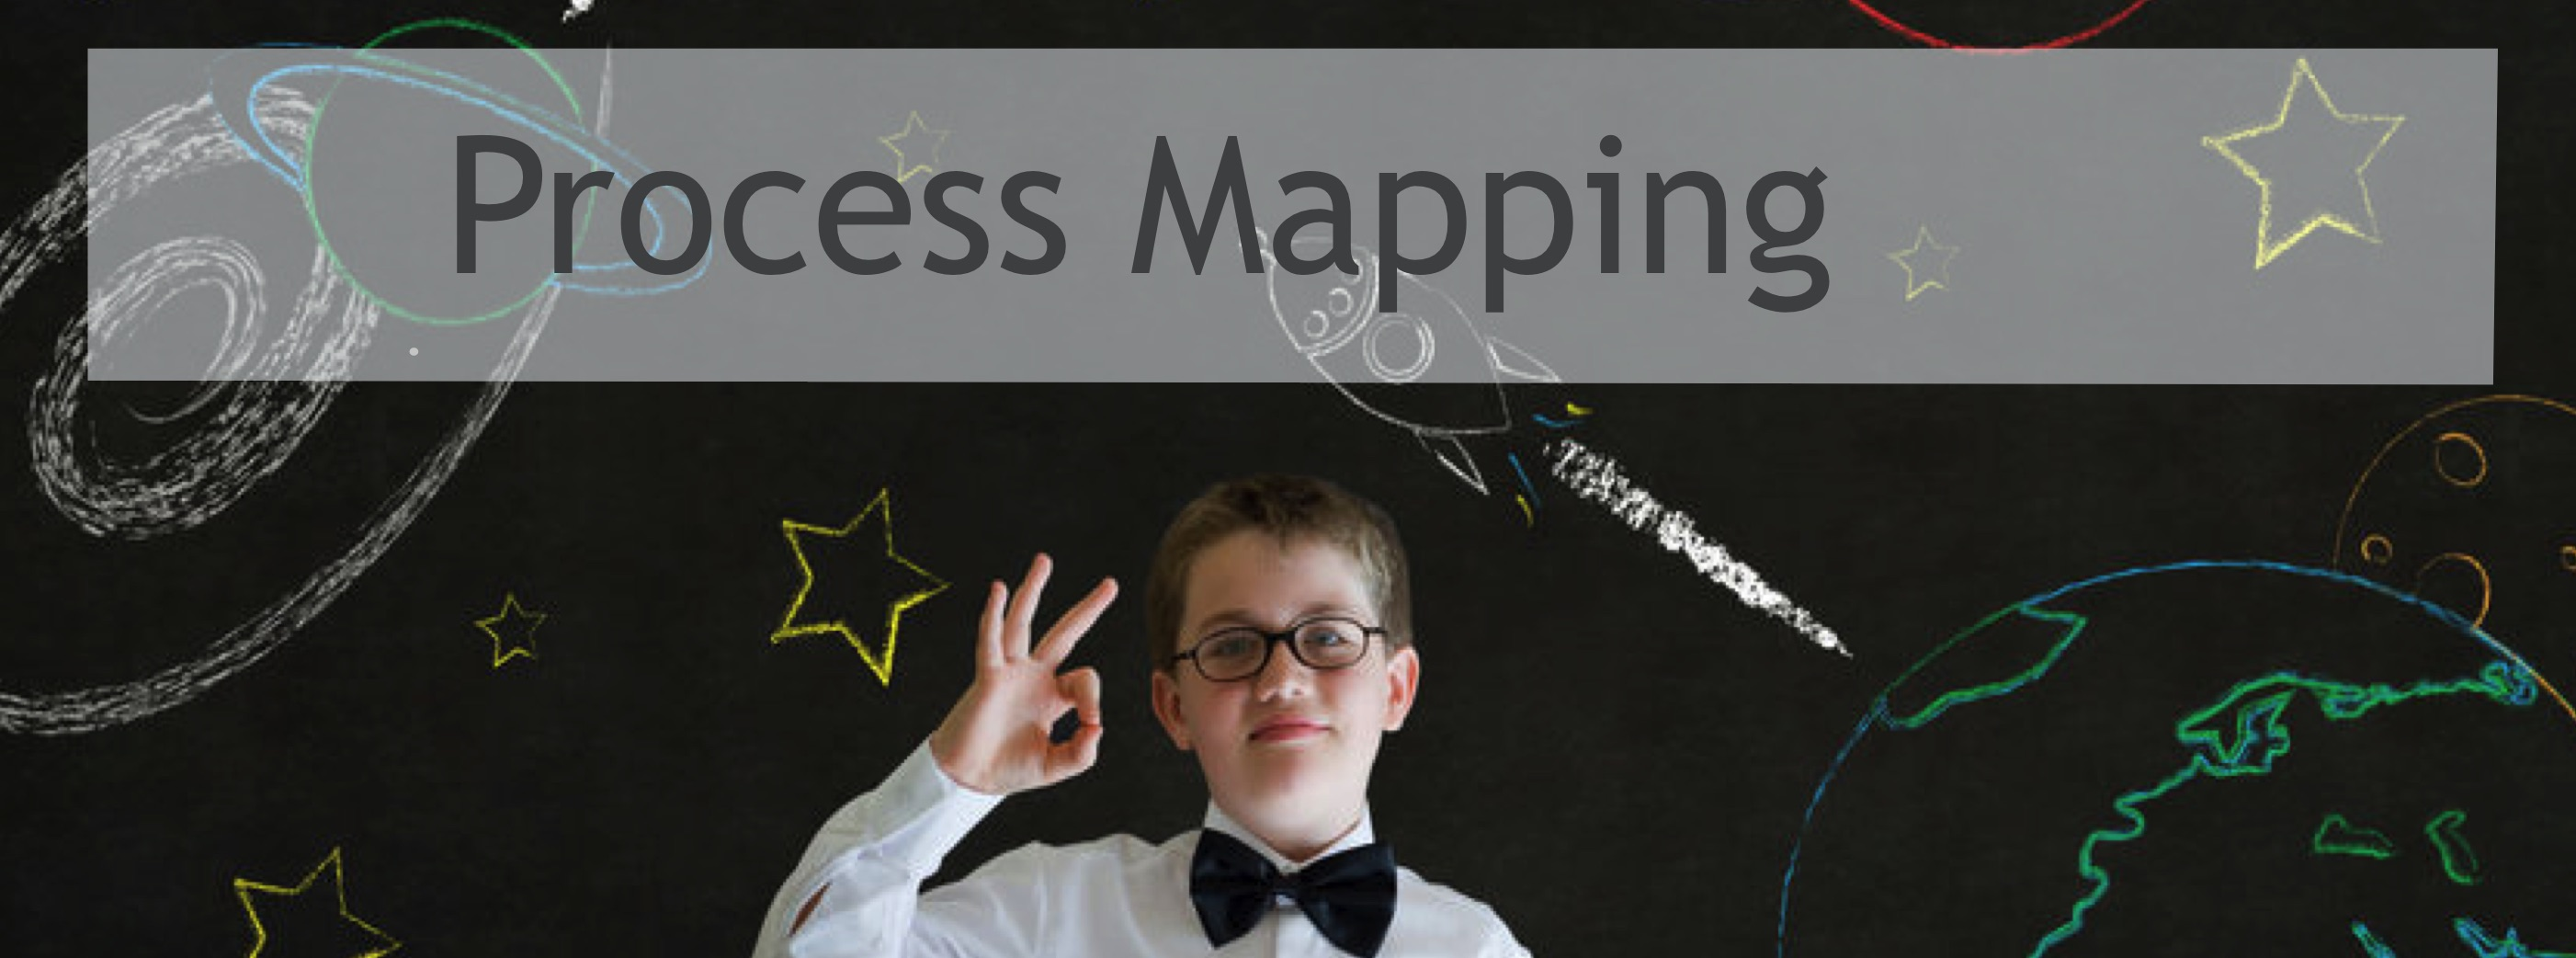 Process Mapping Banner.jpg